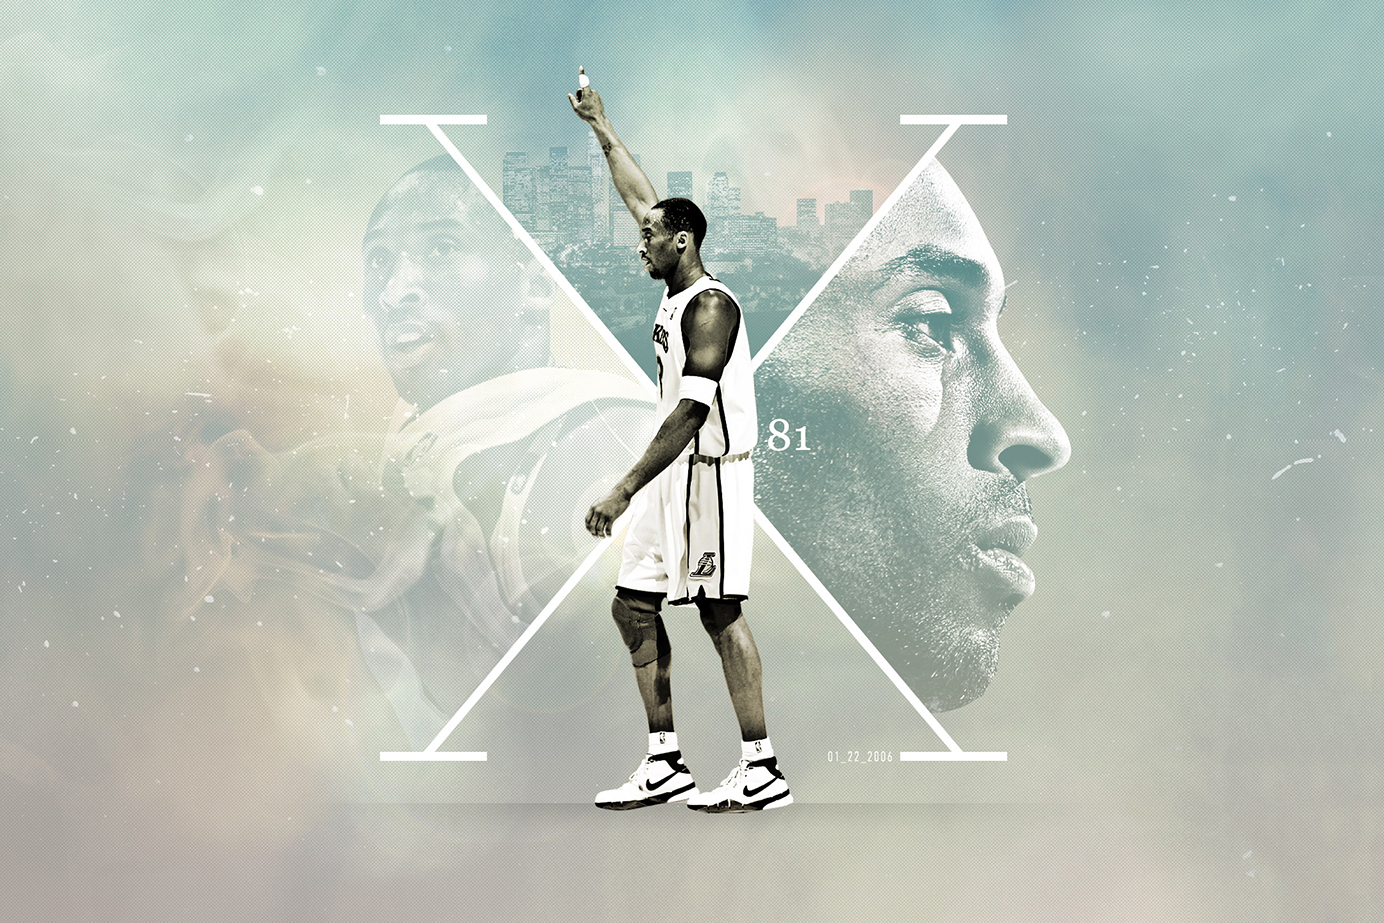 81 remembered kobe bryant hypebeast - Kobe bryant wallpaper free download ...